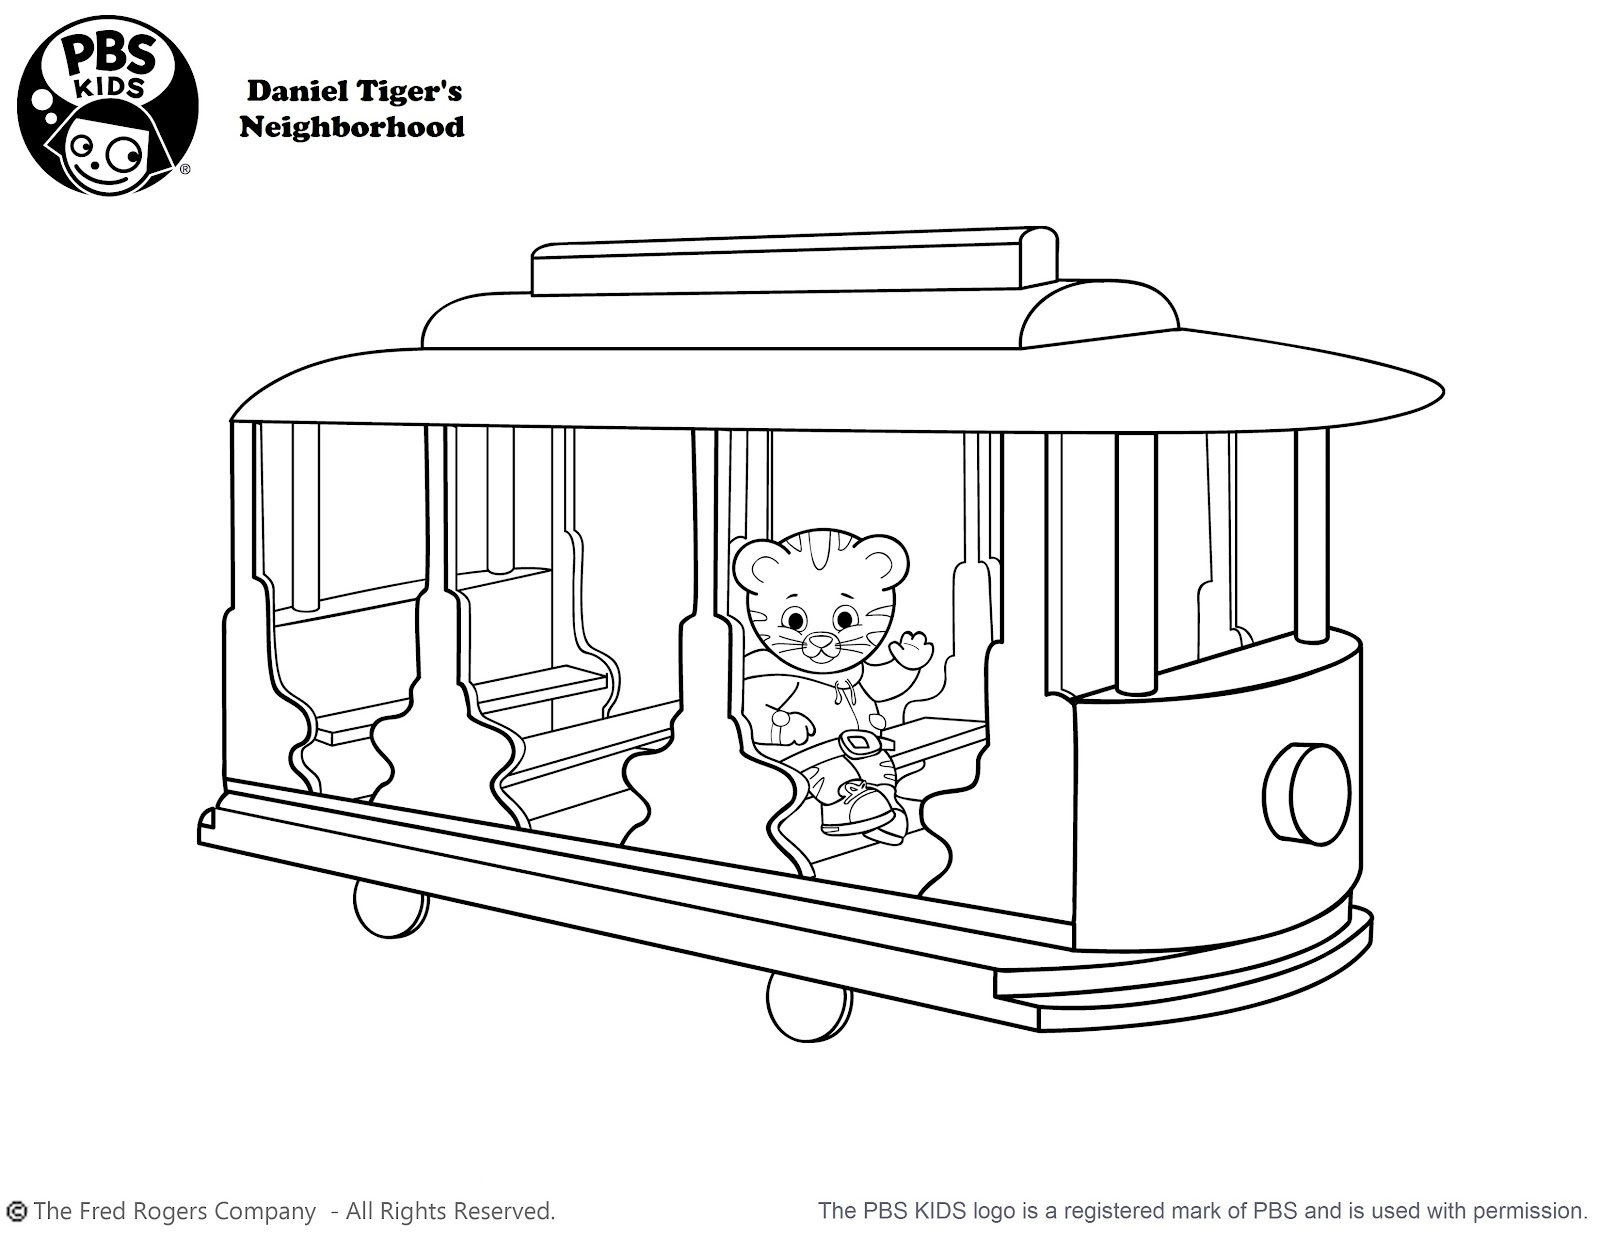 photo relating to Daniel Tiger Printable identify Daniel Tigers Community Printable Coloring Web pages